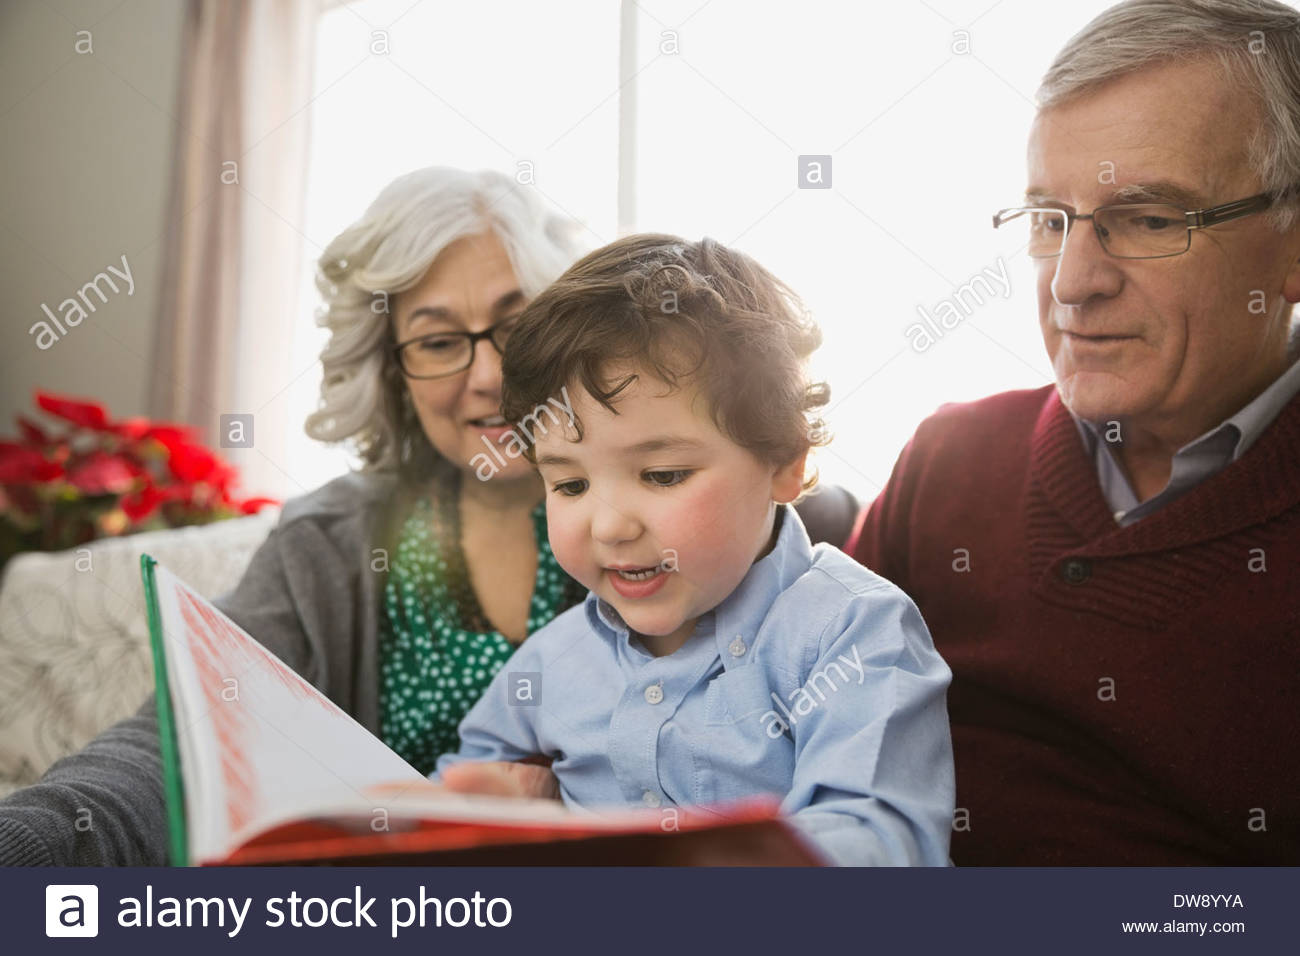 Grandparents and grandson reading book together - Stock Image